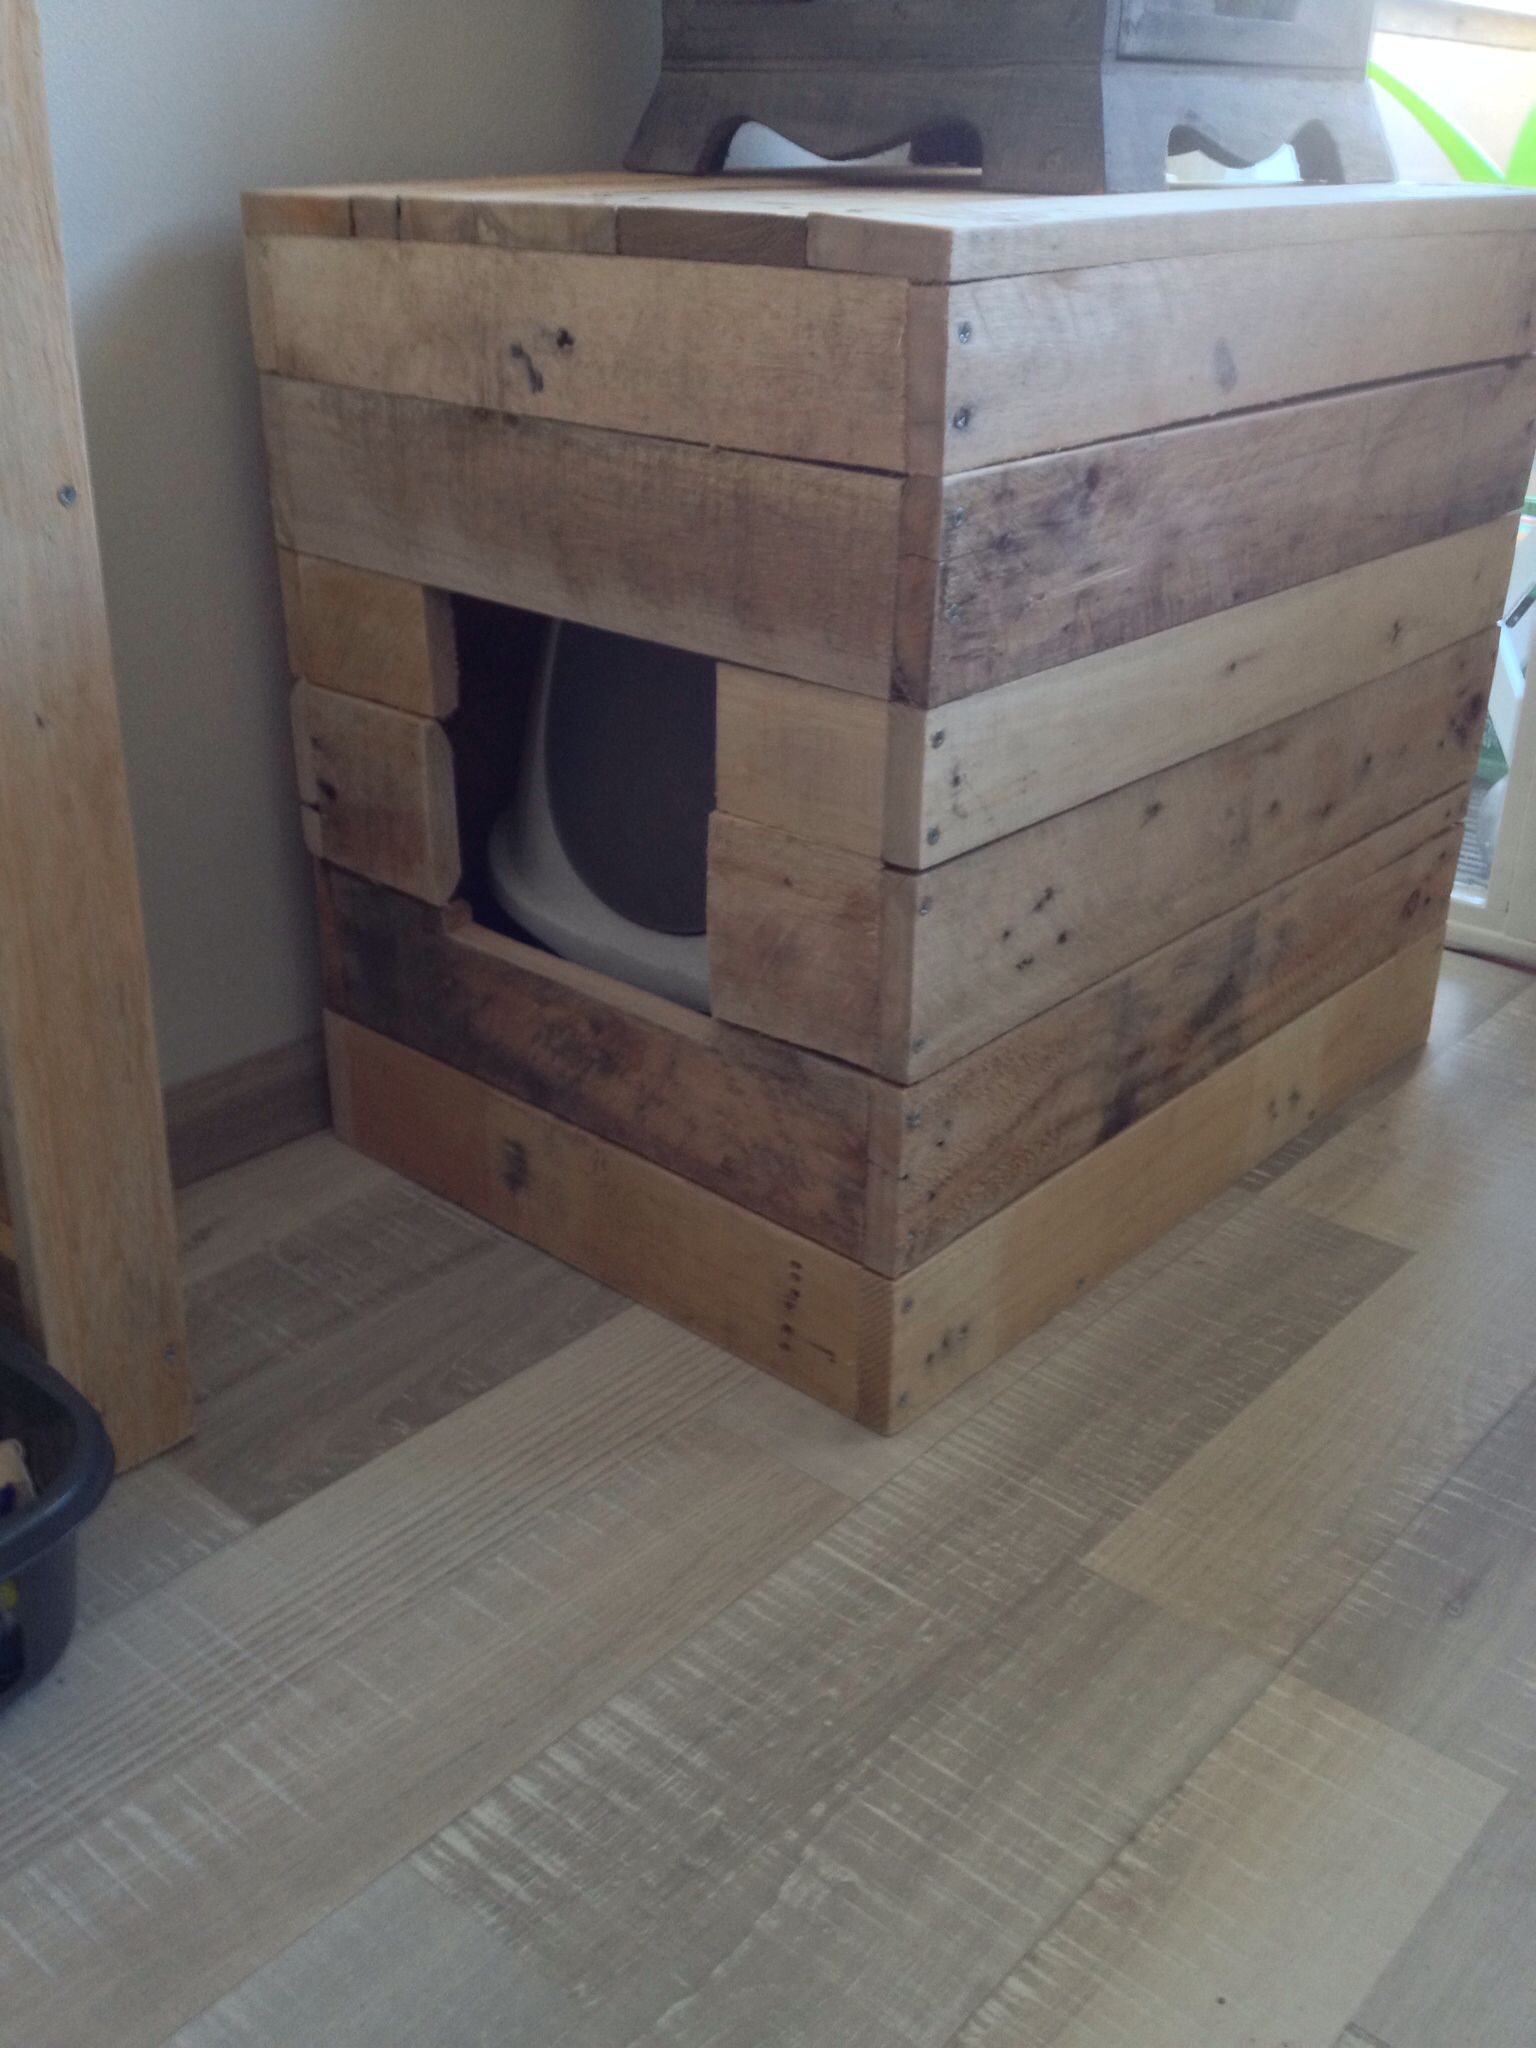 Kattenhuis Hout Kattenbak Pallethout Pinterest Litter Box Cat And